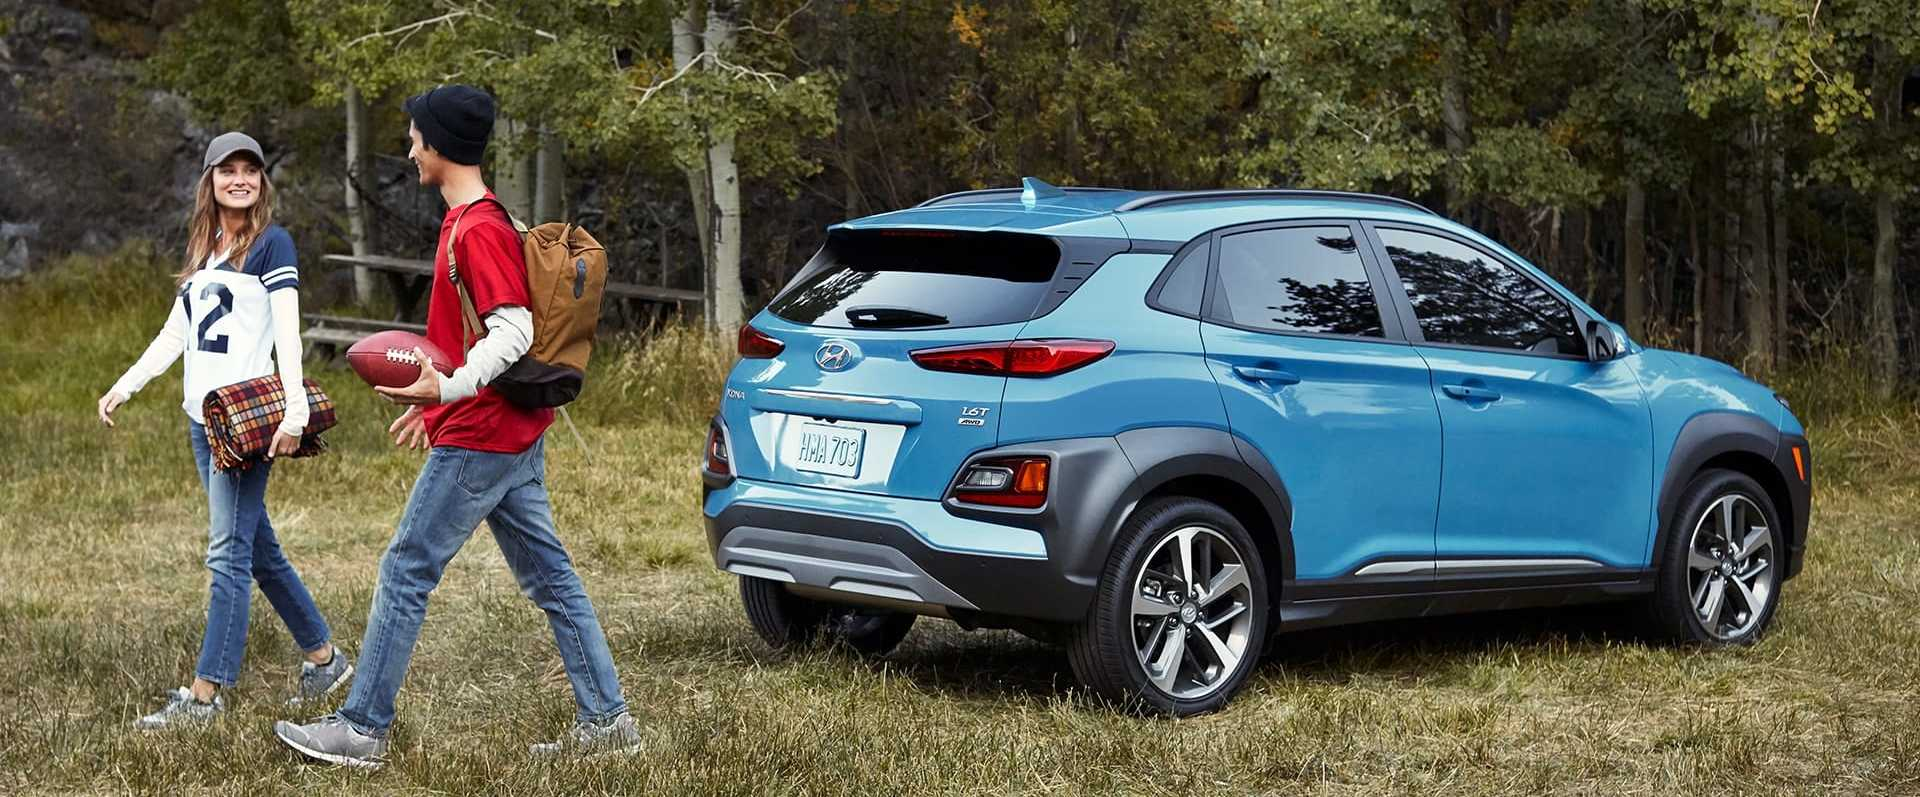 2020 Hyundai Kona Leasing near Bowie, MD